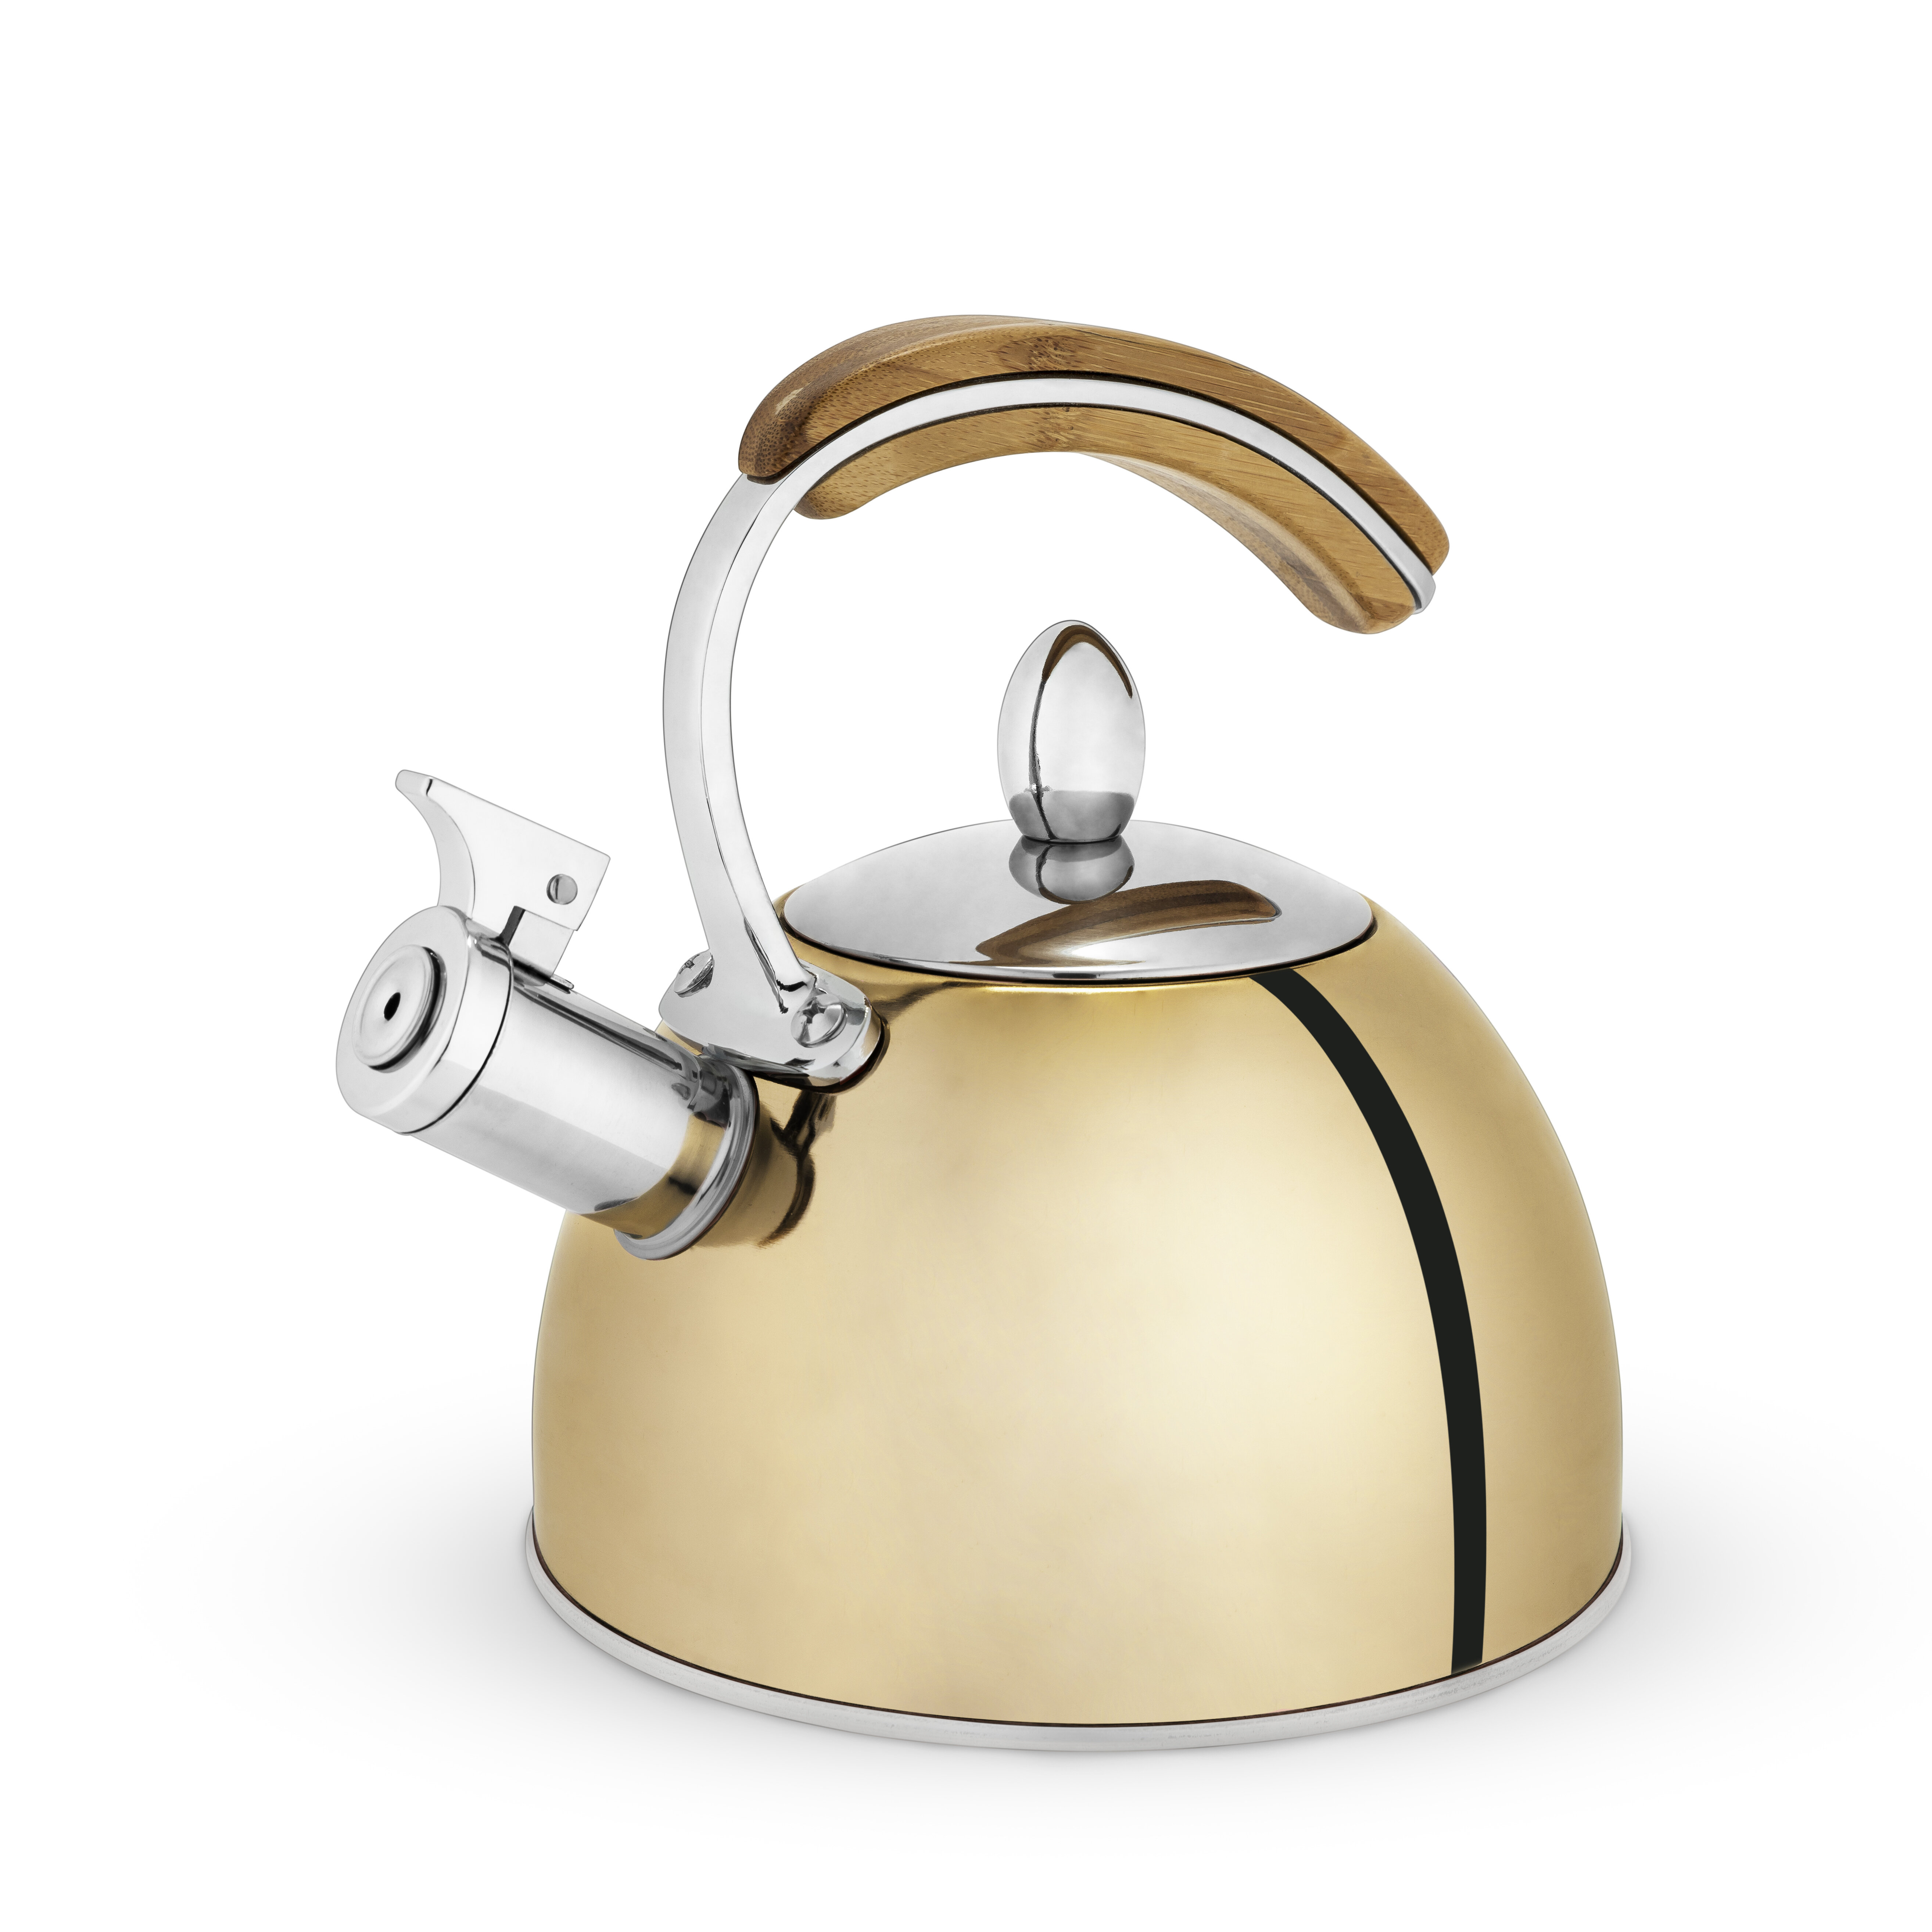 Pinky Up 2 18 Qt Presley Stainless Steel Whistling Stovetop Kettle Reviews